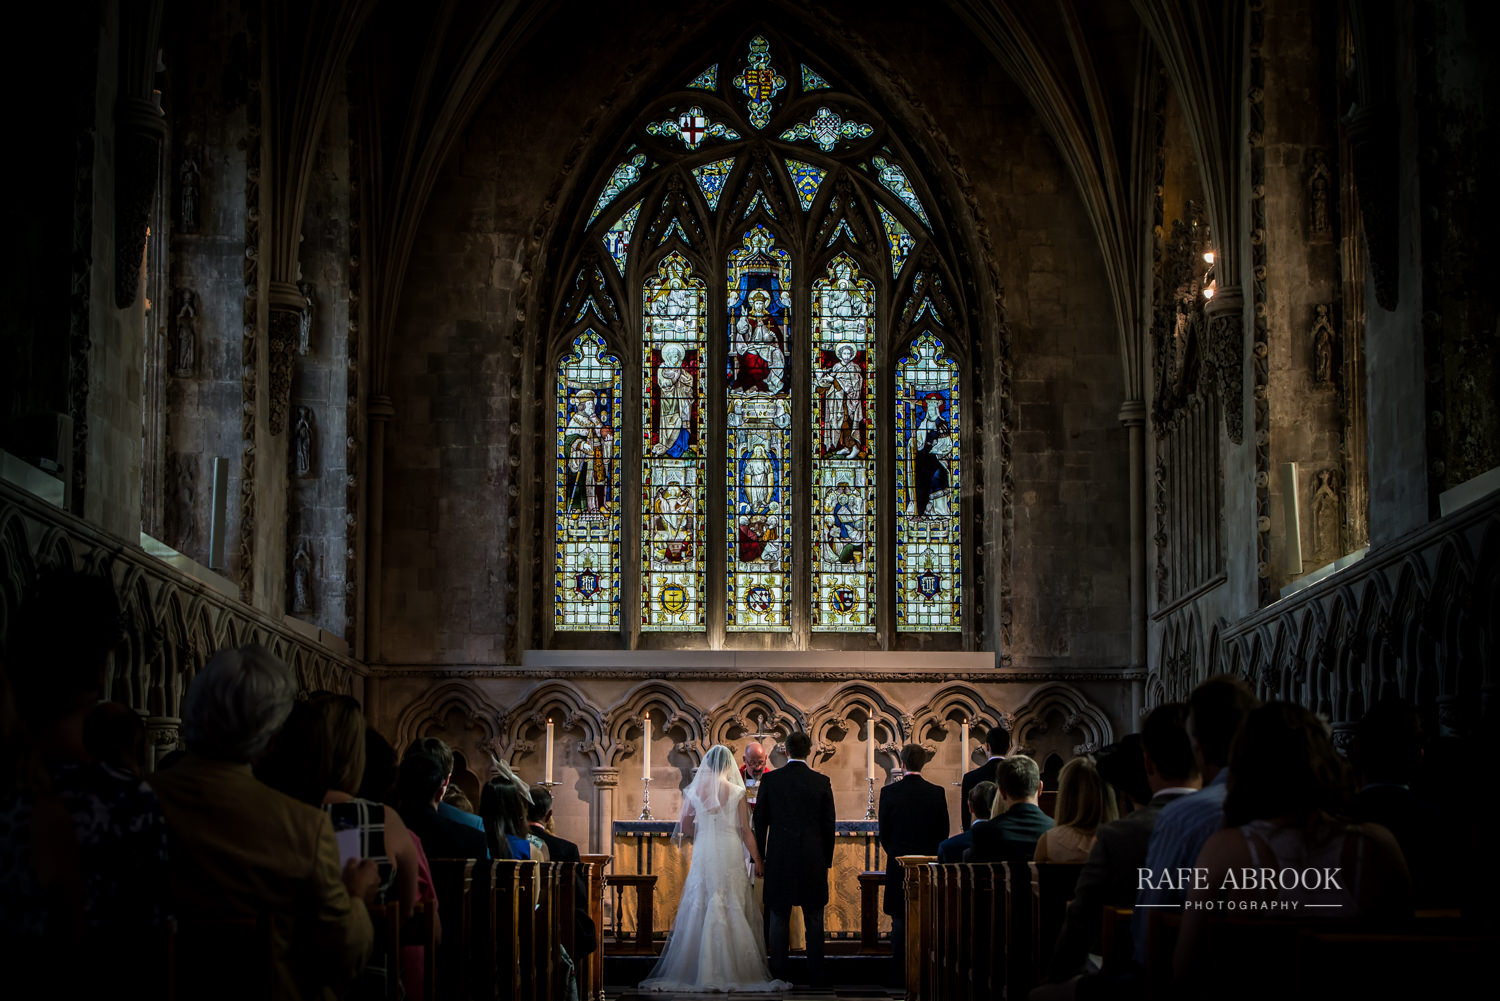 st albans cathedral wedding harpenden rafe abrook photography hertfordshire wedding photographer-1017.jpg